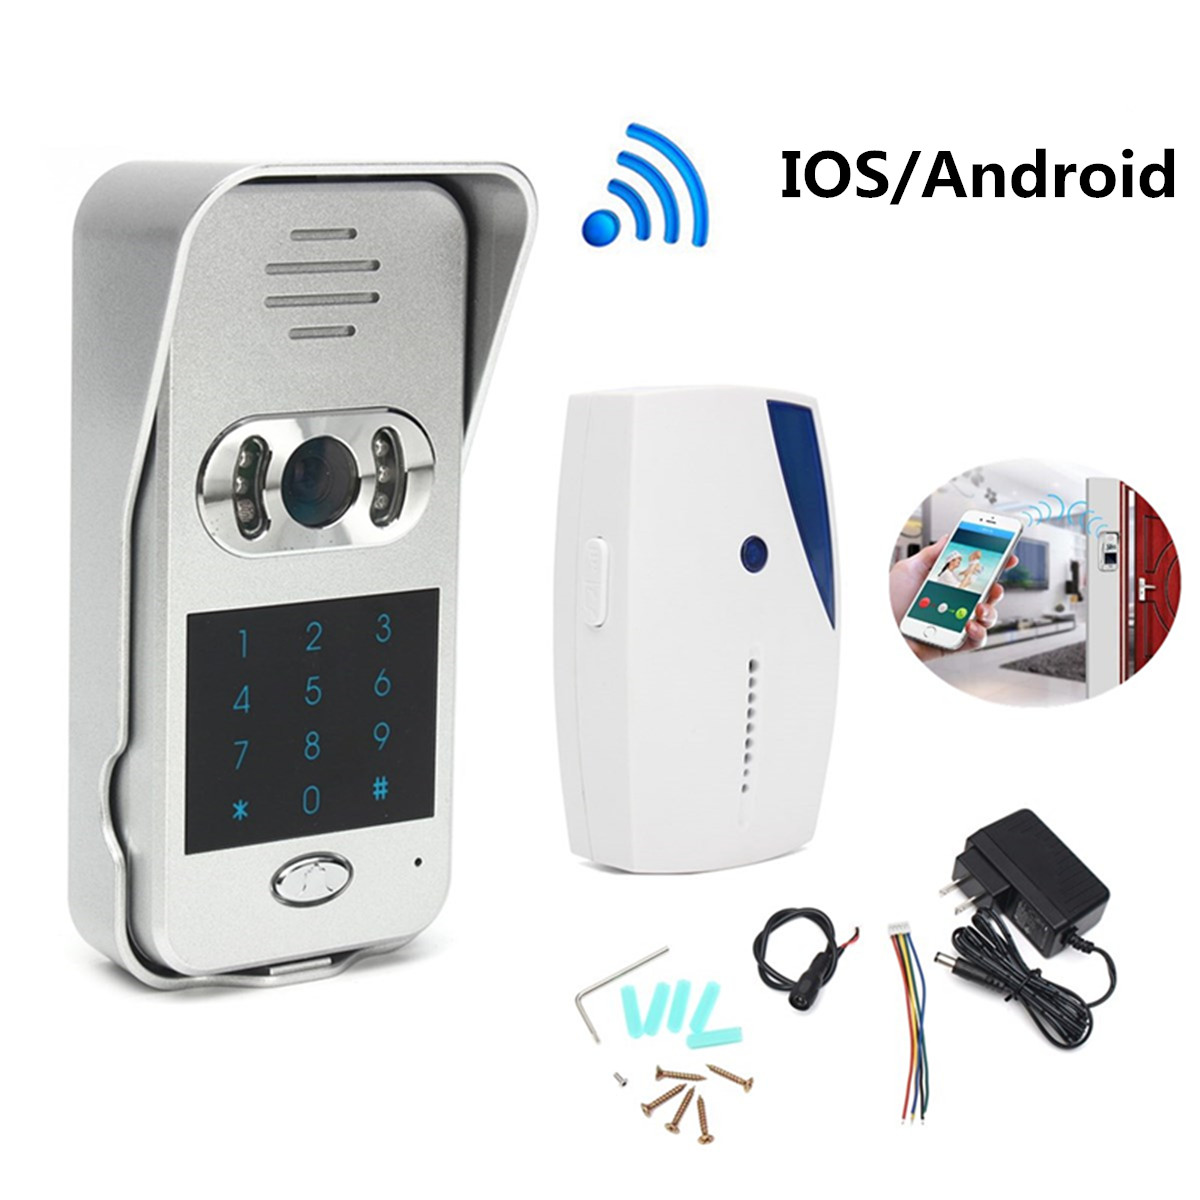 New Wireless Wifi/IP Remote Video Unlock Camera Phone Intercom Video Doorbell IR Home Security Building Automation new forcummins insite date unlock proramm